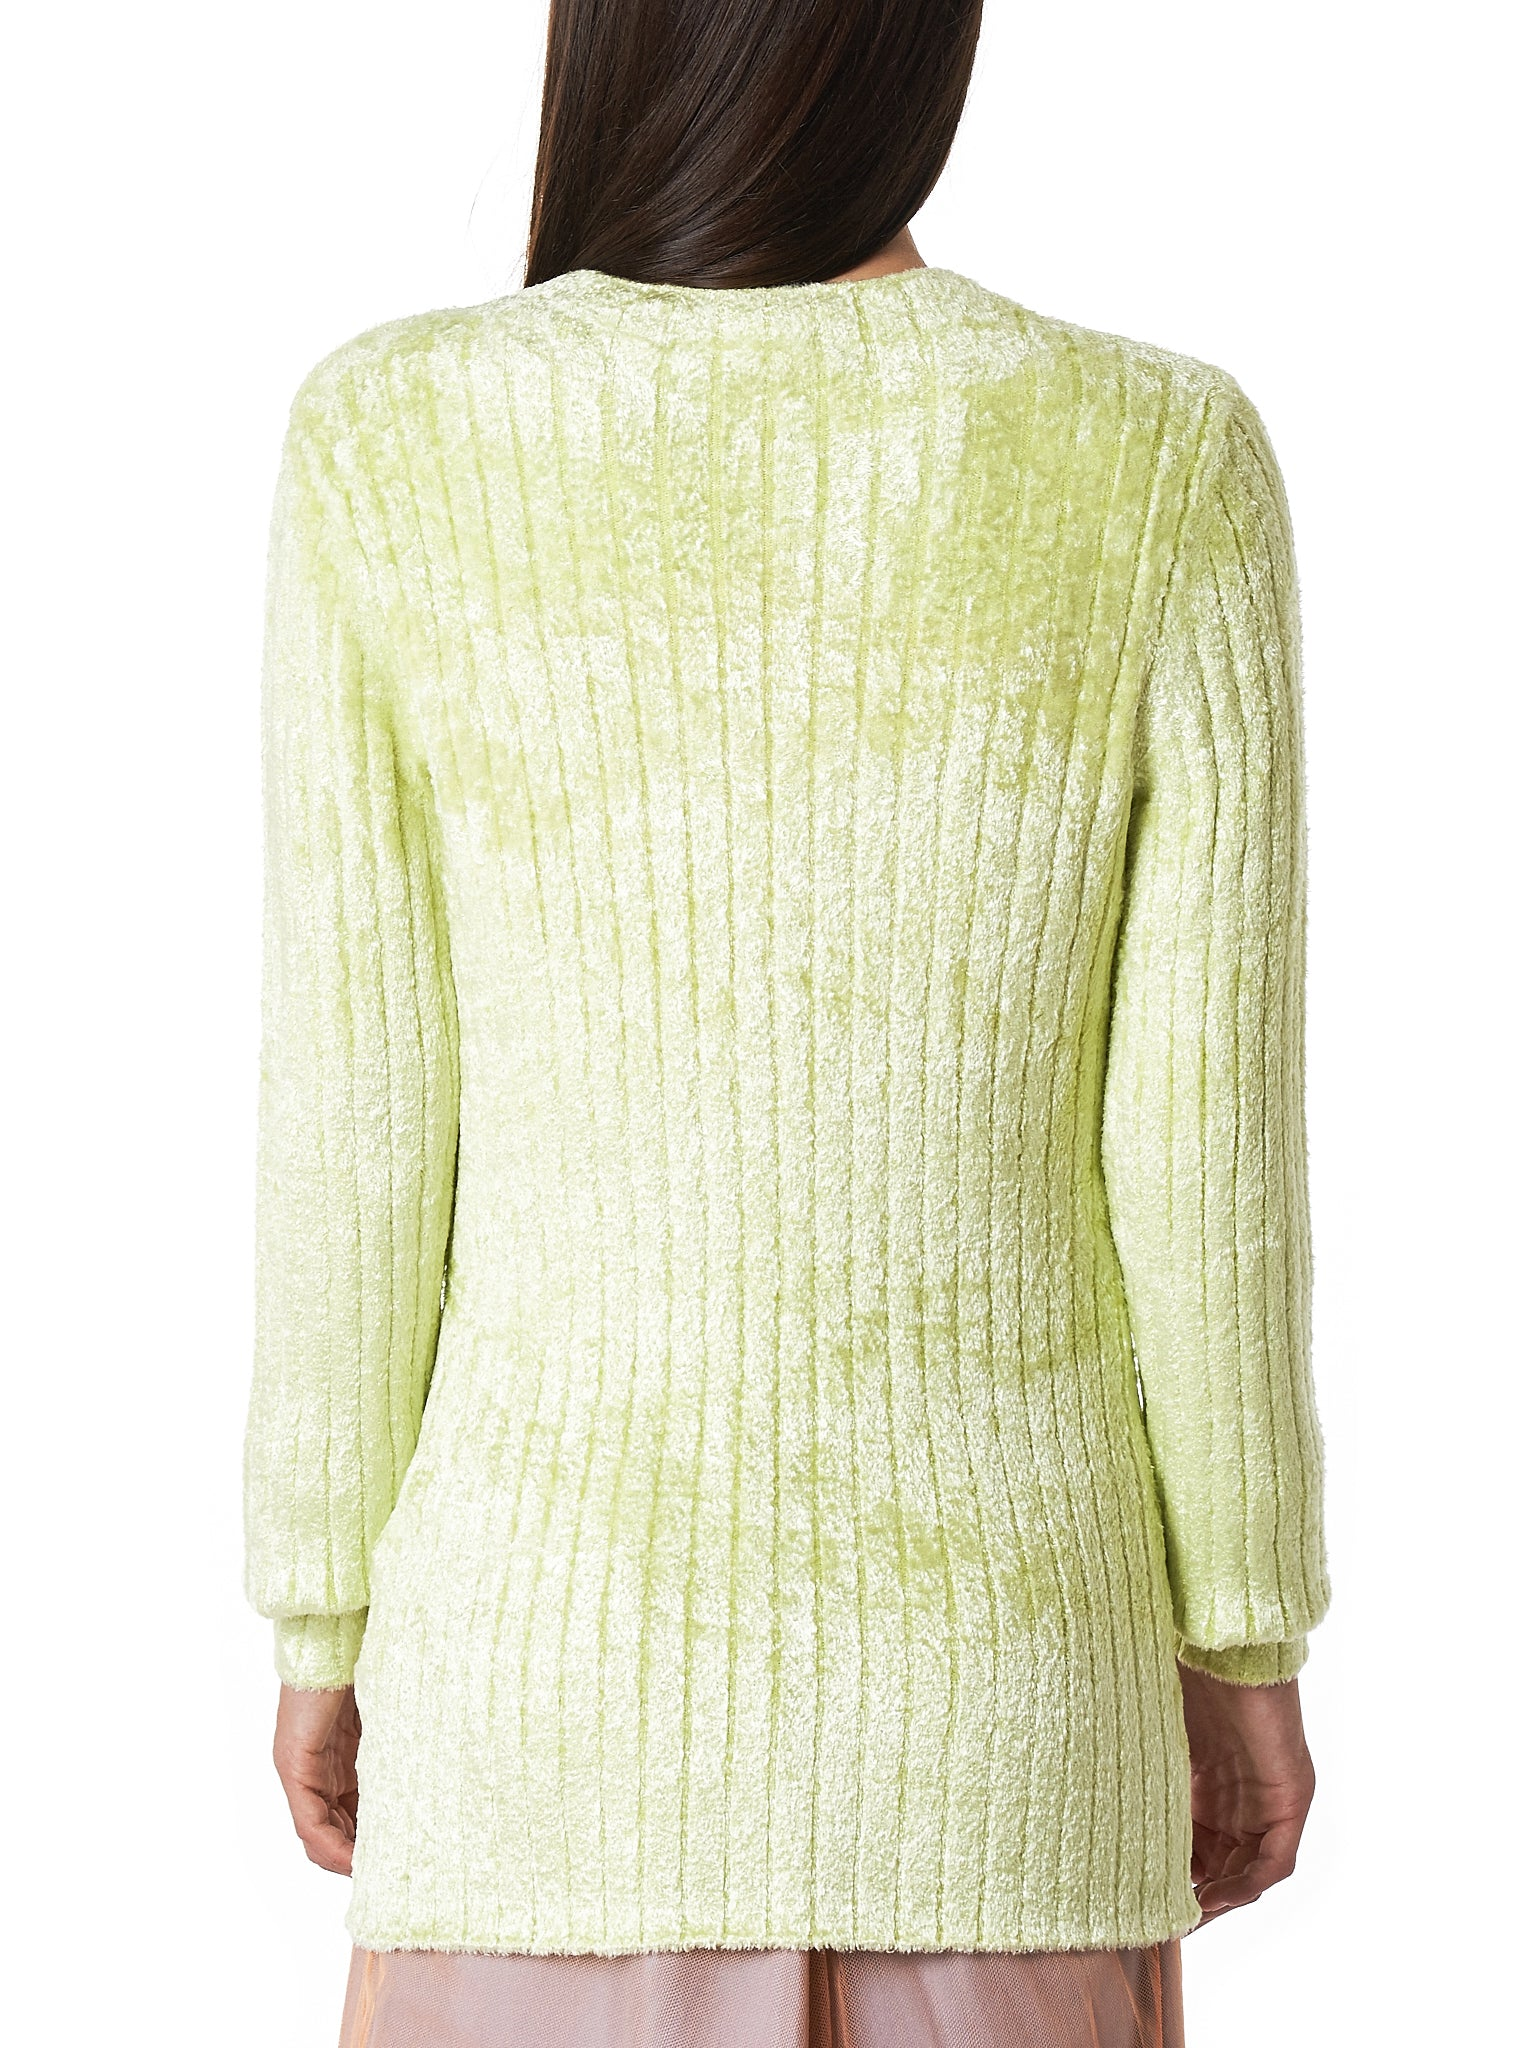 'Dion' Collarless Sweater (9VK8013-LEMON-LIME)